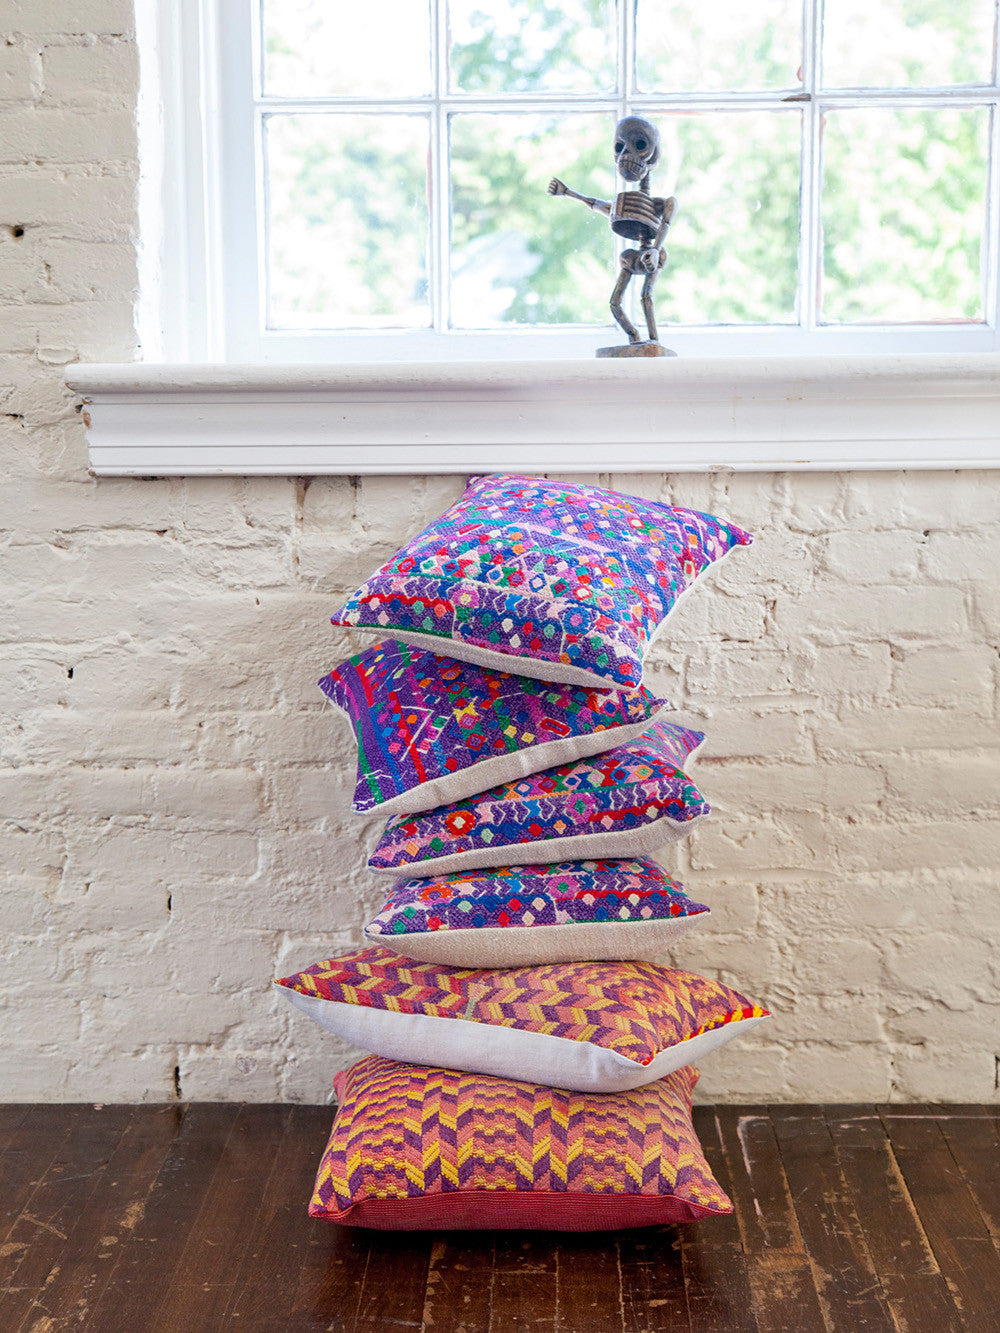 Vintage One-of-a-kind Pillows